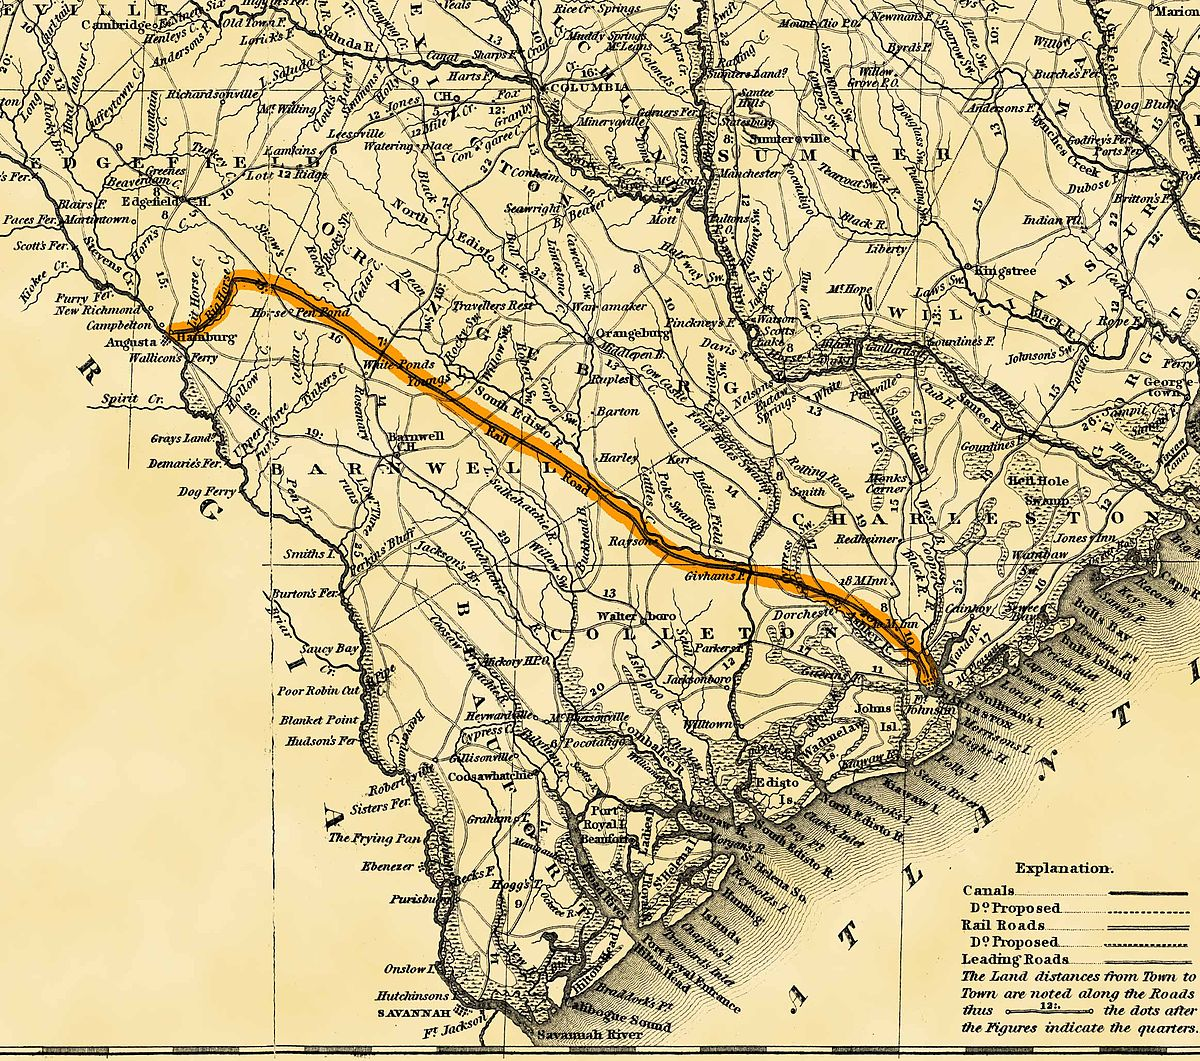 South Carolina Canal And Railroad Company Wikipedia - Road map of north and south carolina